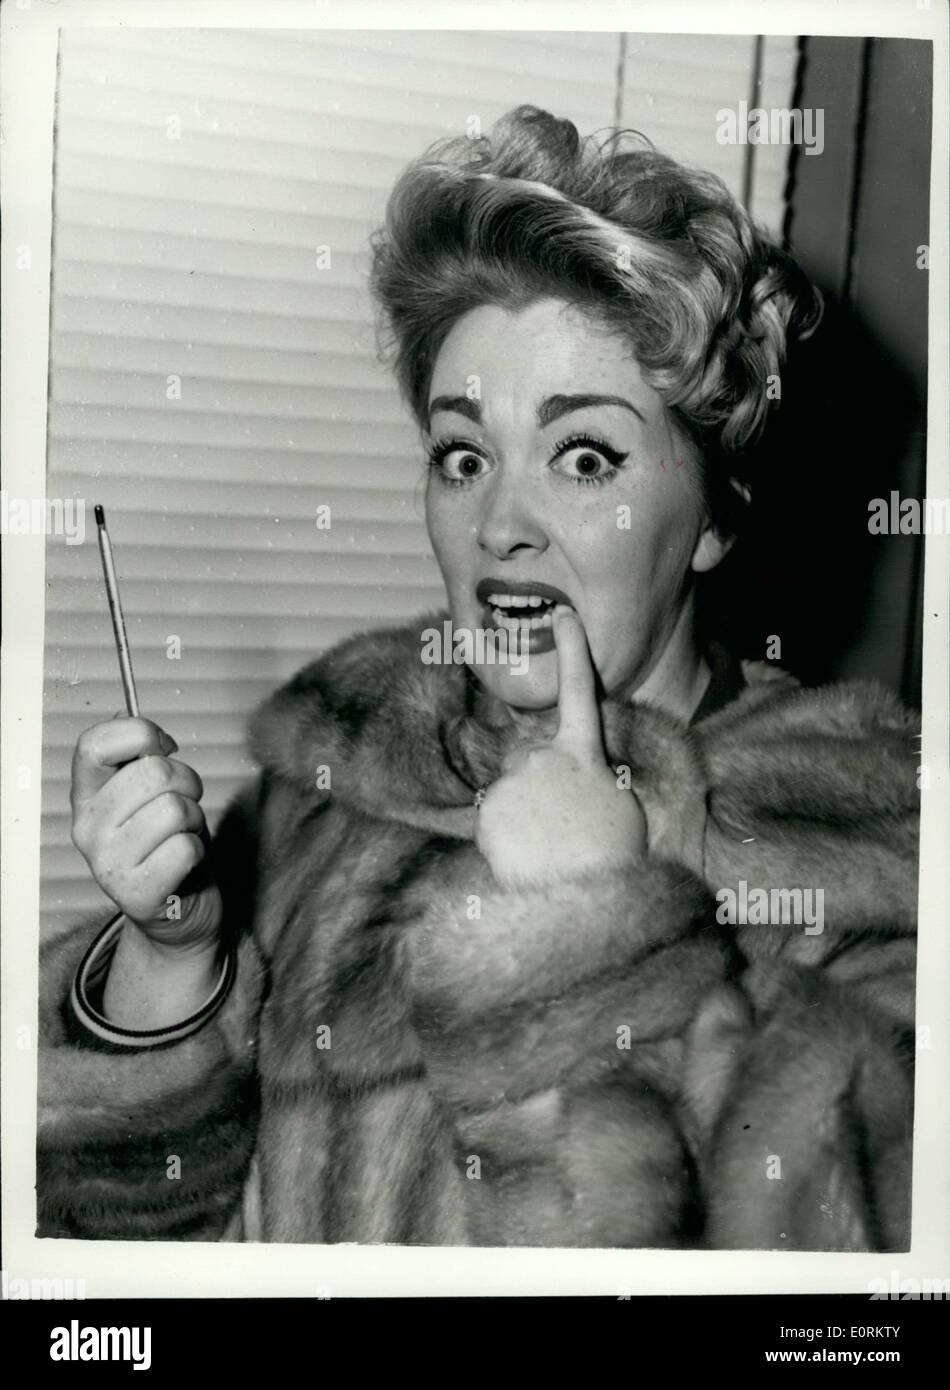 Jan. 01, 1960 - Reception for Marion Ryan. A press reception was given in London today to popular singer Marion Ryan, who has joined E.M.I. Records. Marion, she has starred in the Granada Network T.V. Production Spot the Tune wince its inception four years ago will record for the Columbia label. After tonight's Spot the Tune performance she will be rushed to the Harley Street Nursing Home for an appendicitis operation. Keystone Photo Shows: Marion Ryan looks surprised at the temperature reading when she took her temperature at today's reception. H/Keystone - Stock Image